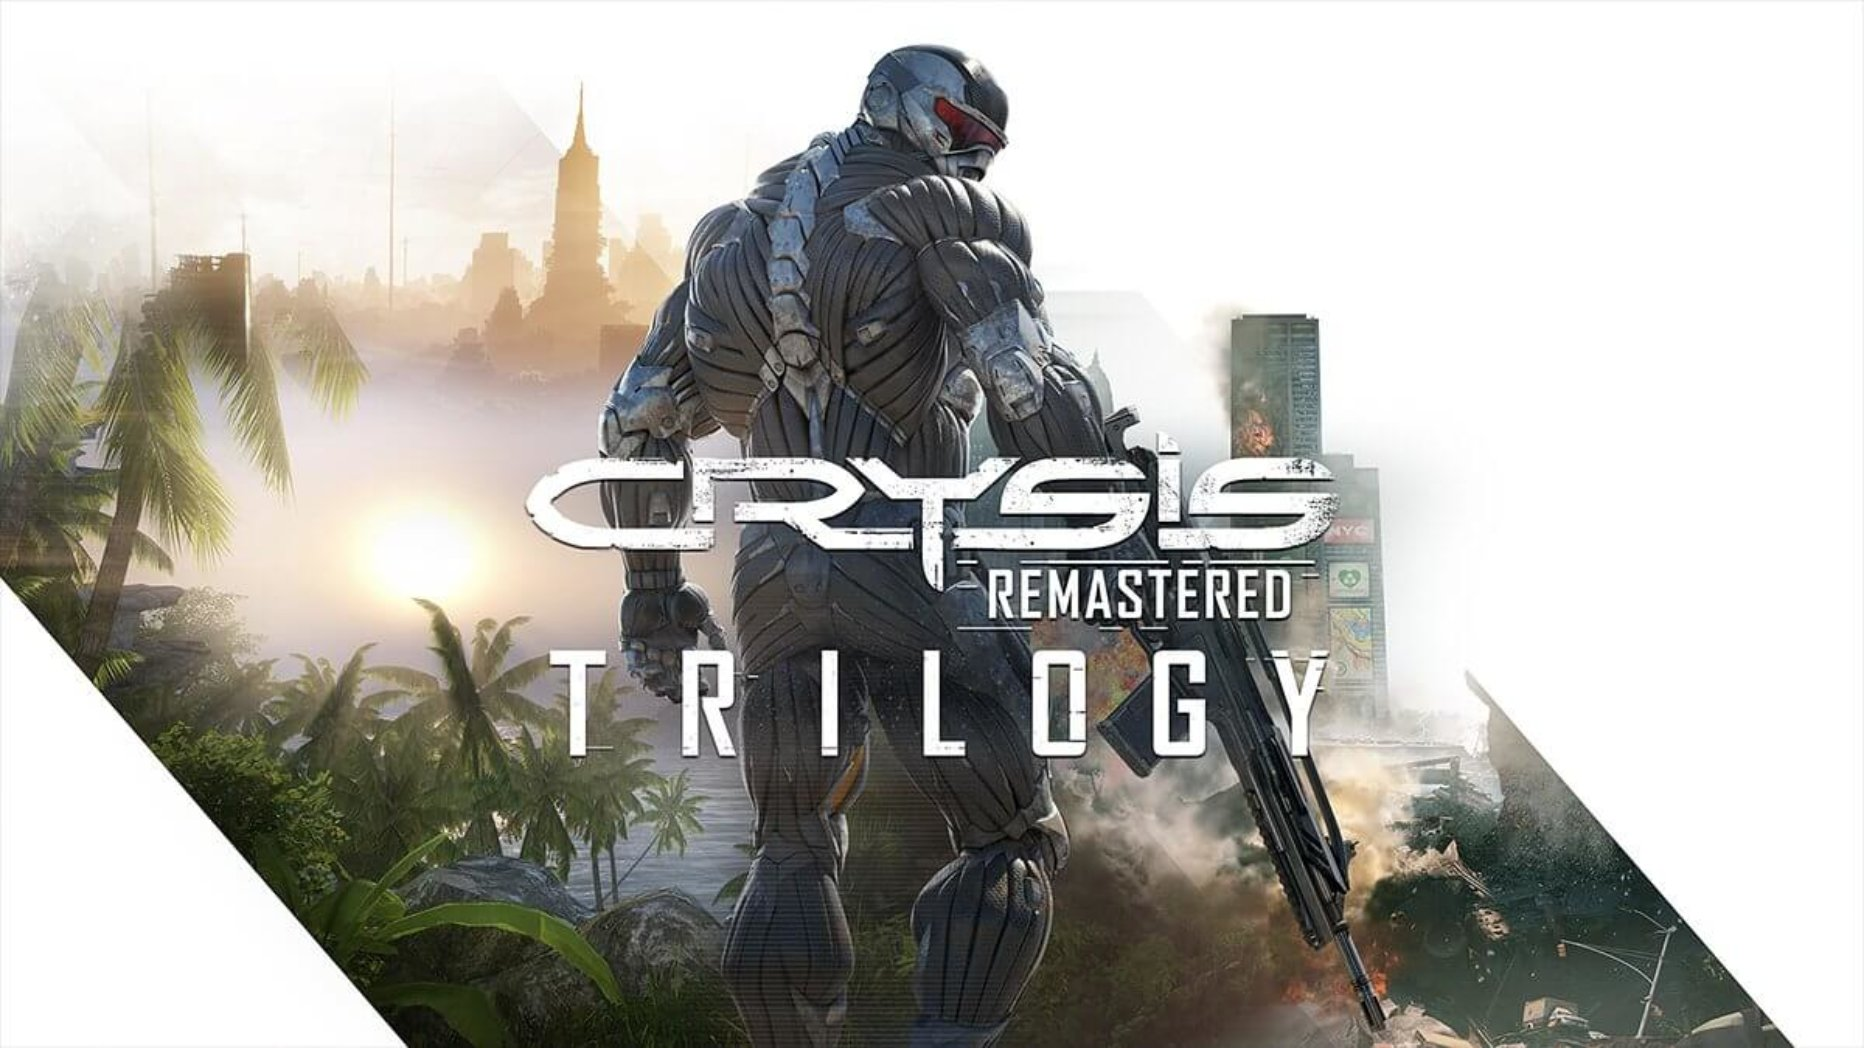 Crysis Remastered Trilogy Is Coming! Here's the Trailer.